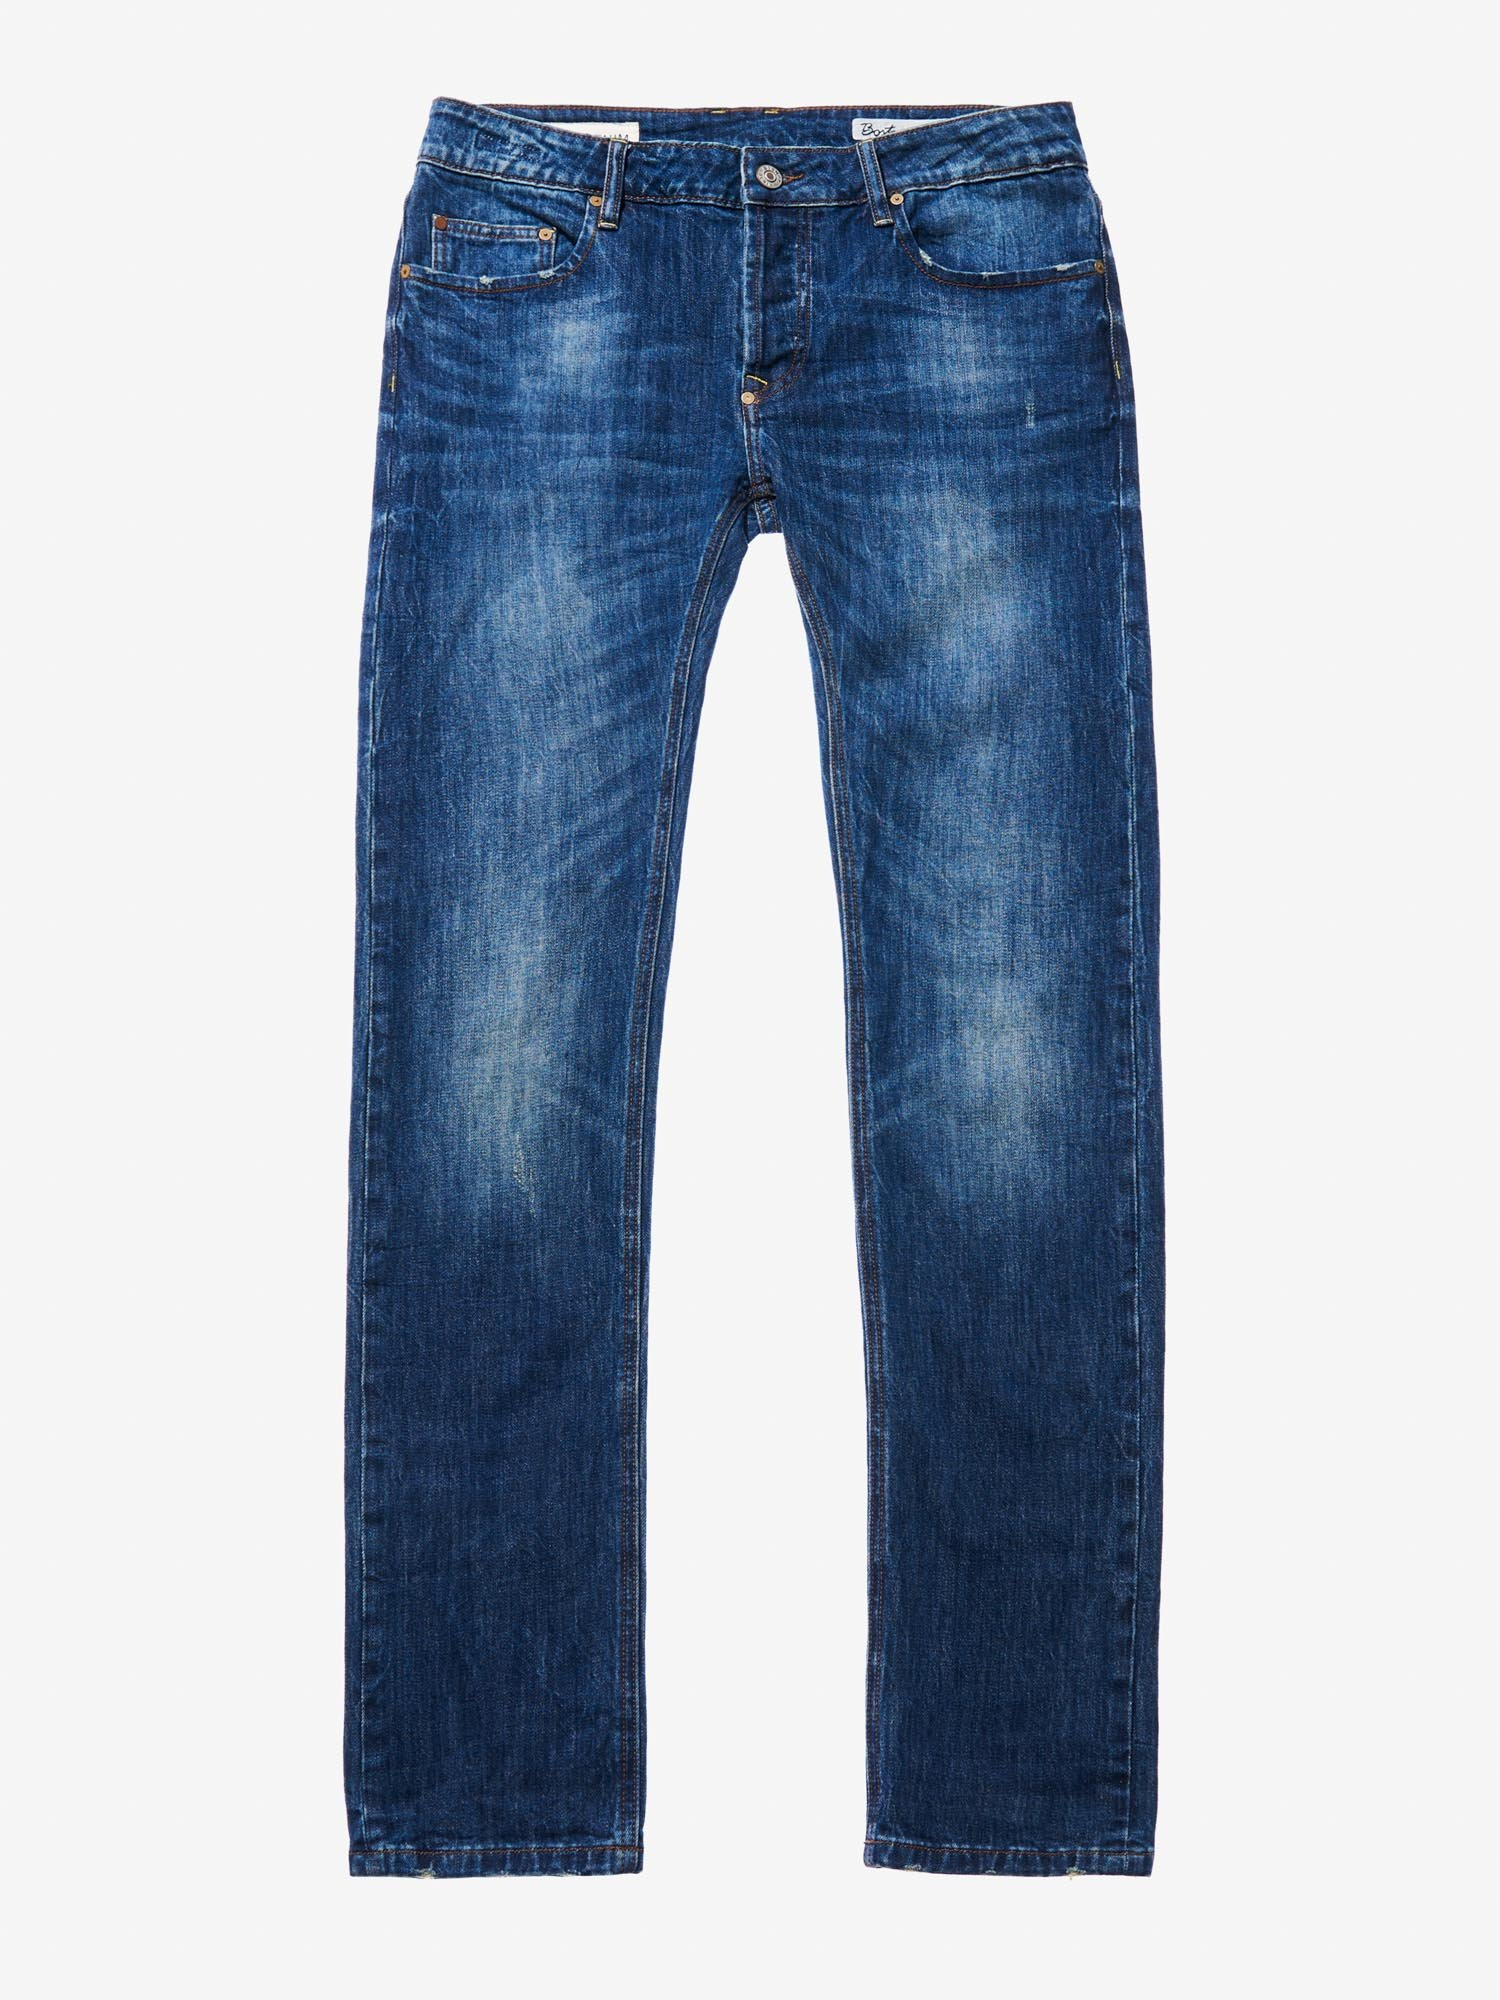 e3d844d342 Blauer - STONE WASHED 5-POCKET DENIM - Stone Washed - Blauer